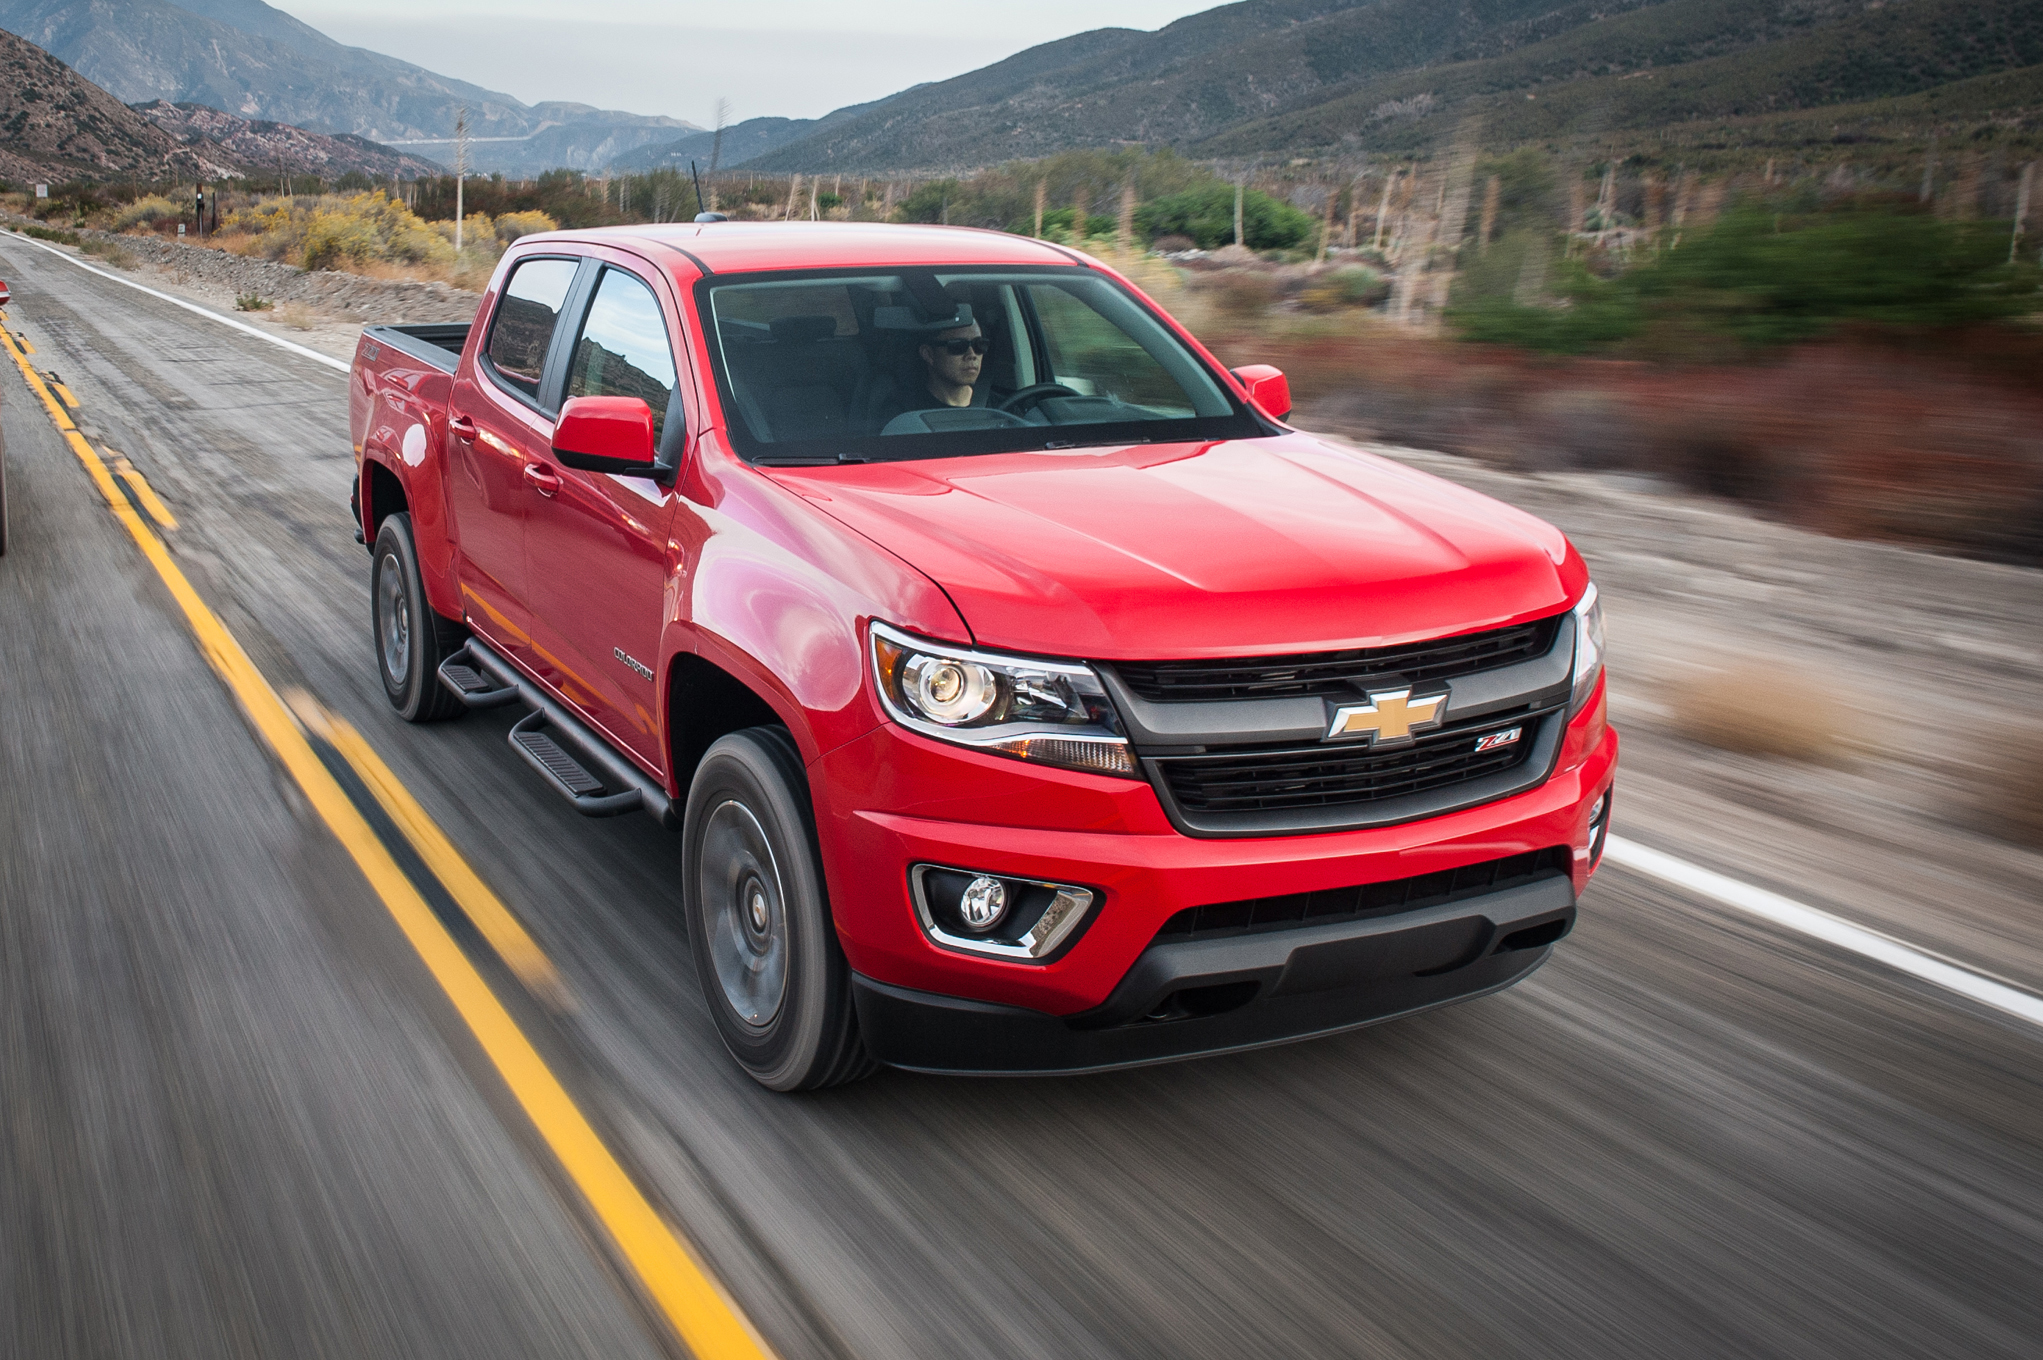 2015 Chevrolet Colorado Pictures Gallery (8 Images)